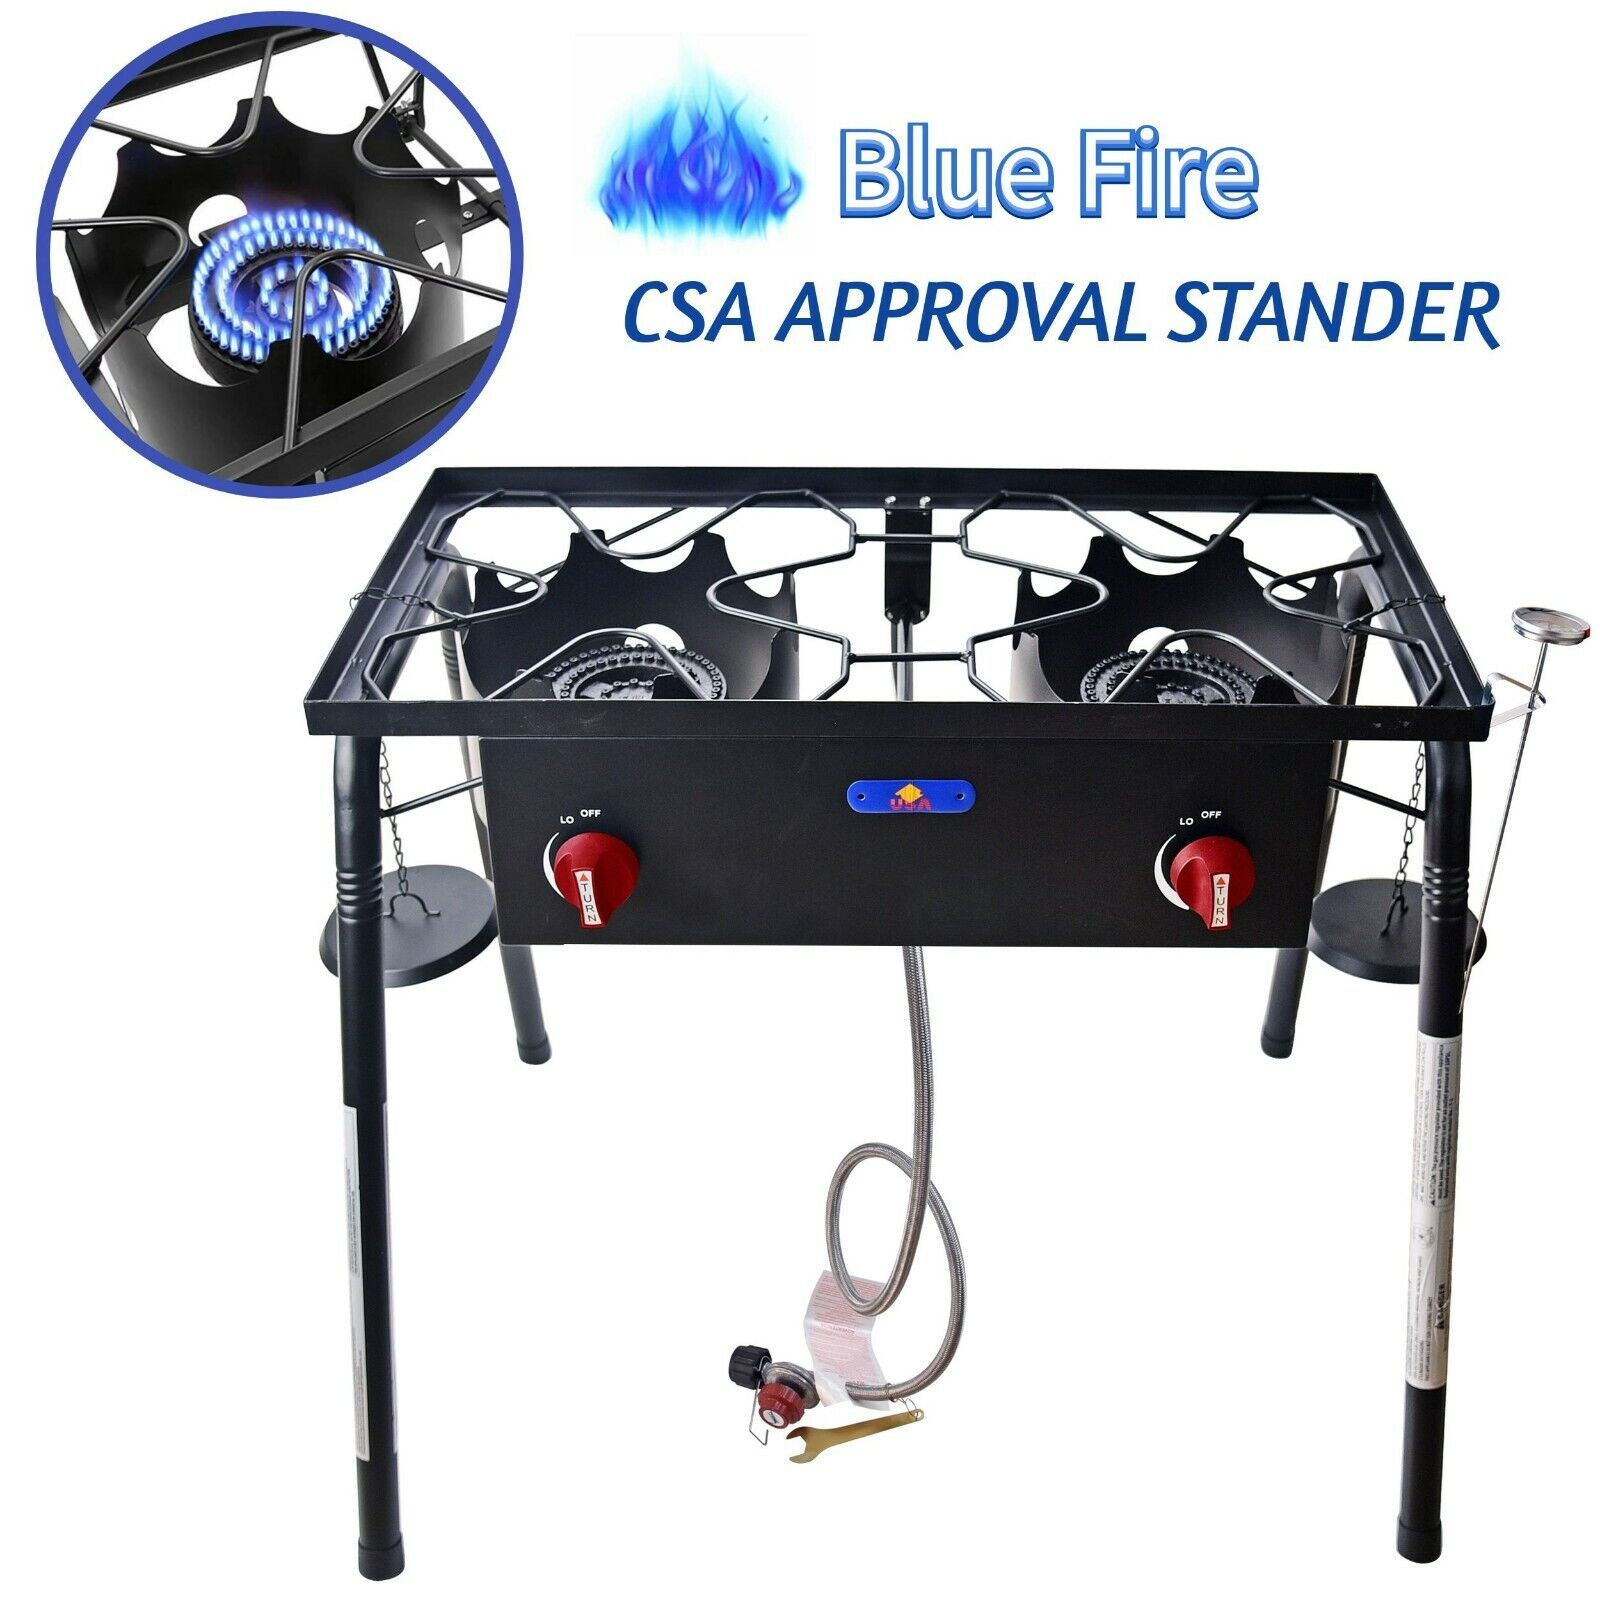 58,000 BTU Outdoor Camping Double Burner Propane Gas Stove C